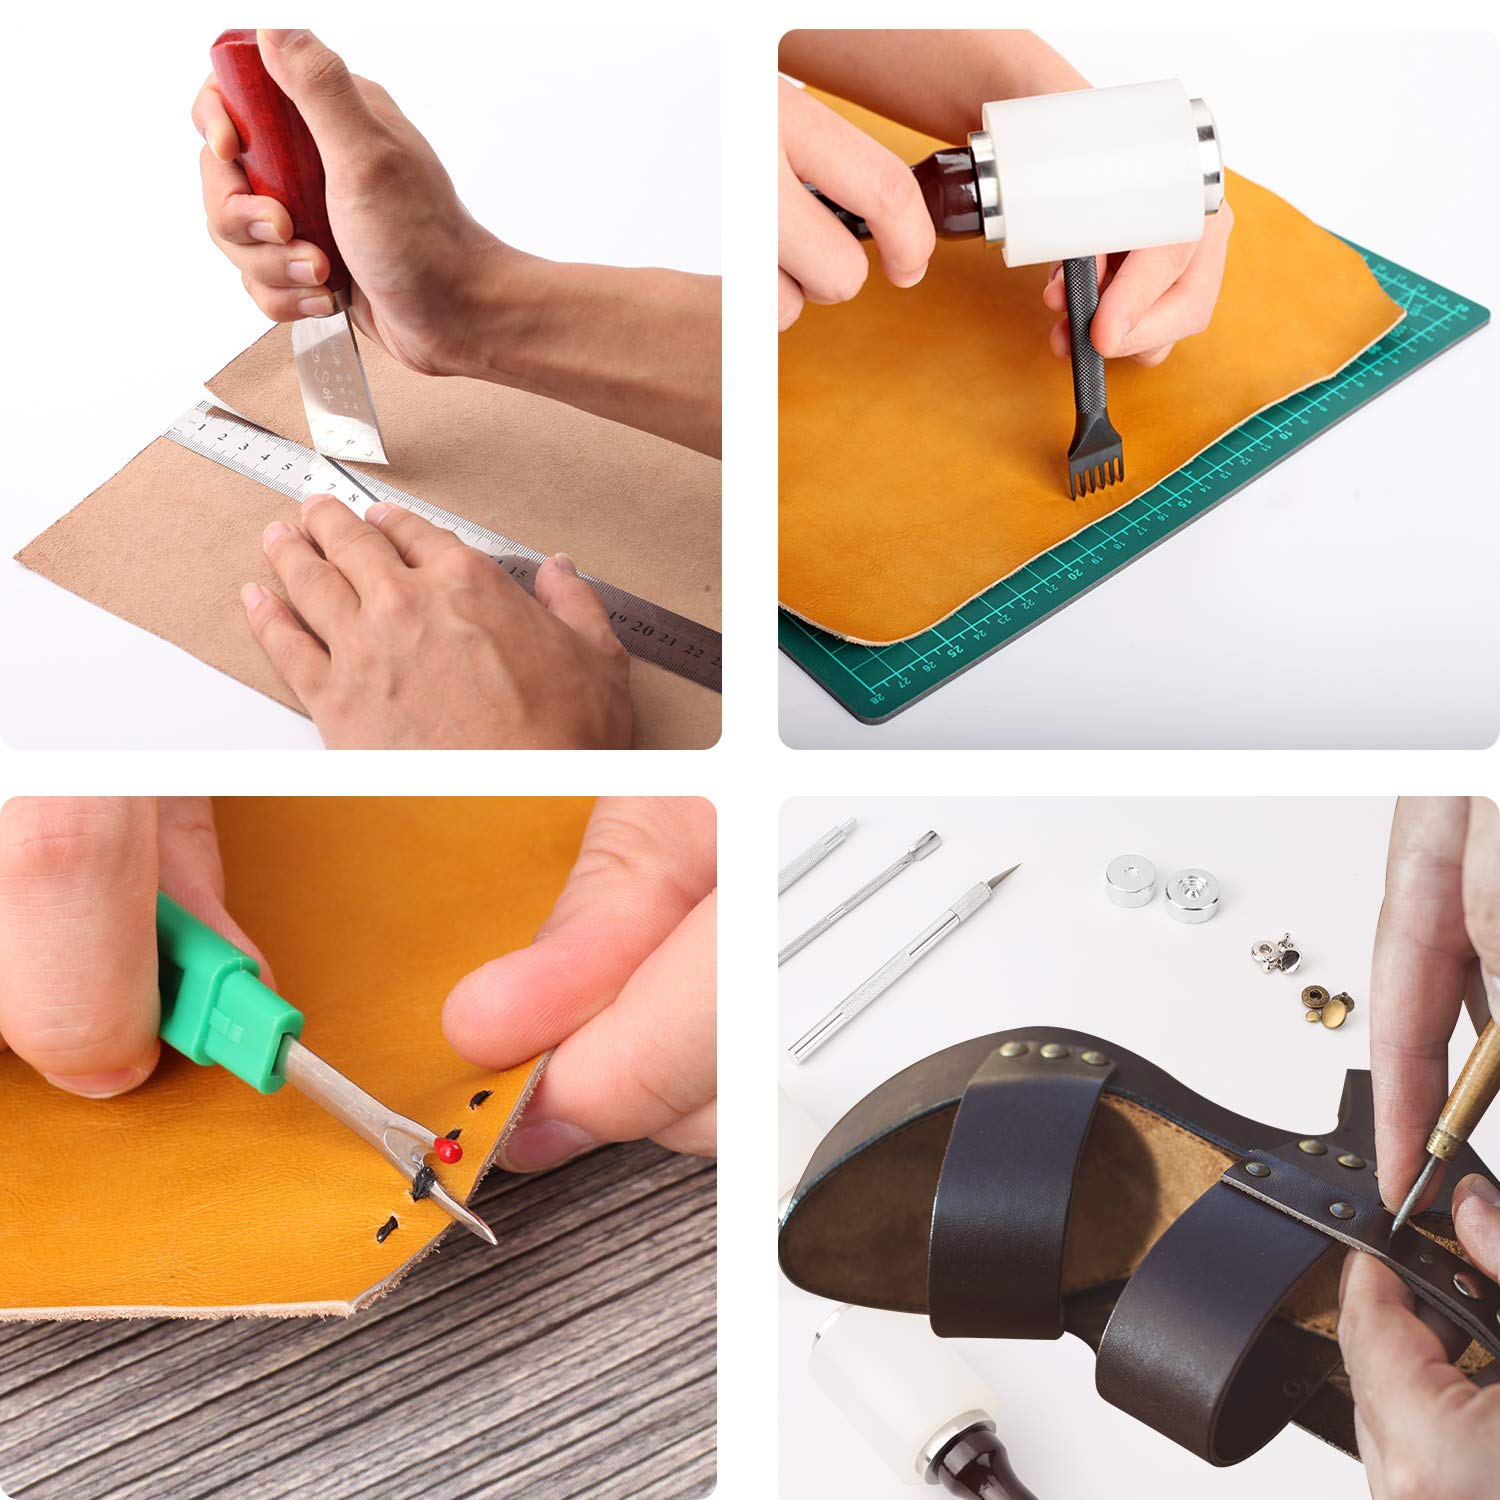 Dorhui 372 Pieces Leather Crafting Tools,Leather Tools Leather Working Tools and Supplies, Leather Craft Stamping Tool, Prong Punch, Hole Hollow Punch, Matting Cut for DIY Leather Artworks by Dorhui (Image #8)